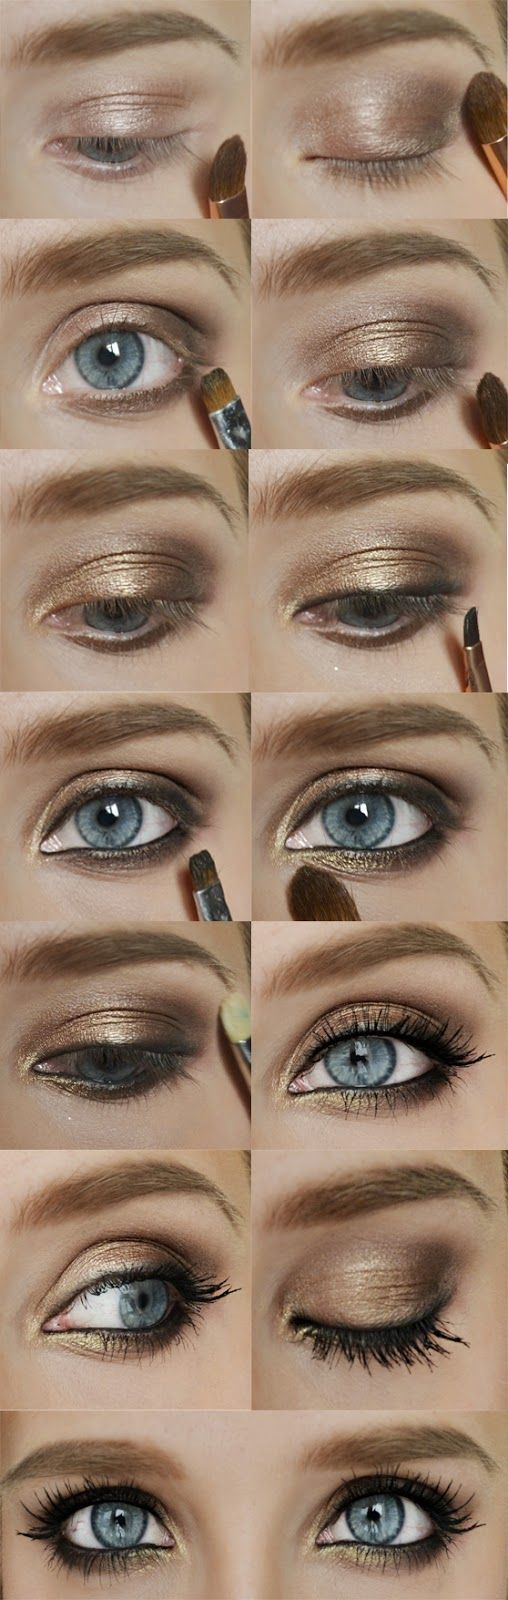 Barbie Mutation: Urban Decay naked palette tutorial